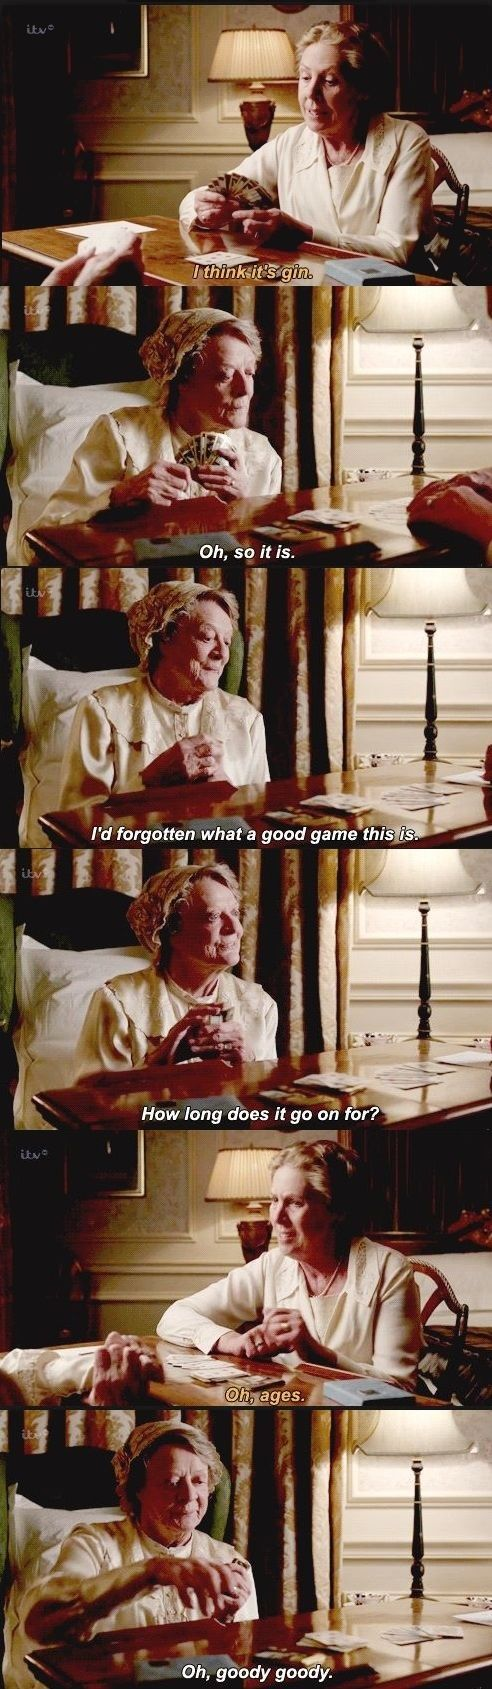 Lady Grantham' sickness and playing cards with Isobel Crawley.